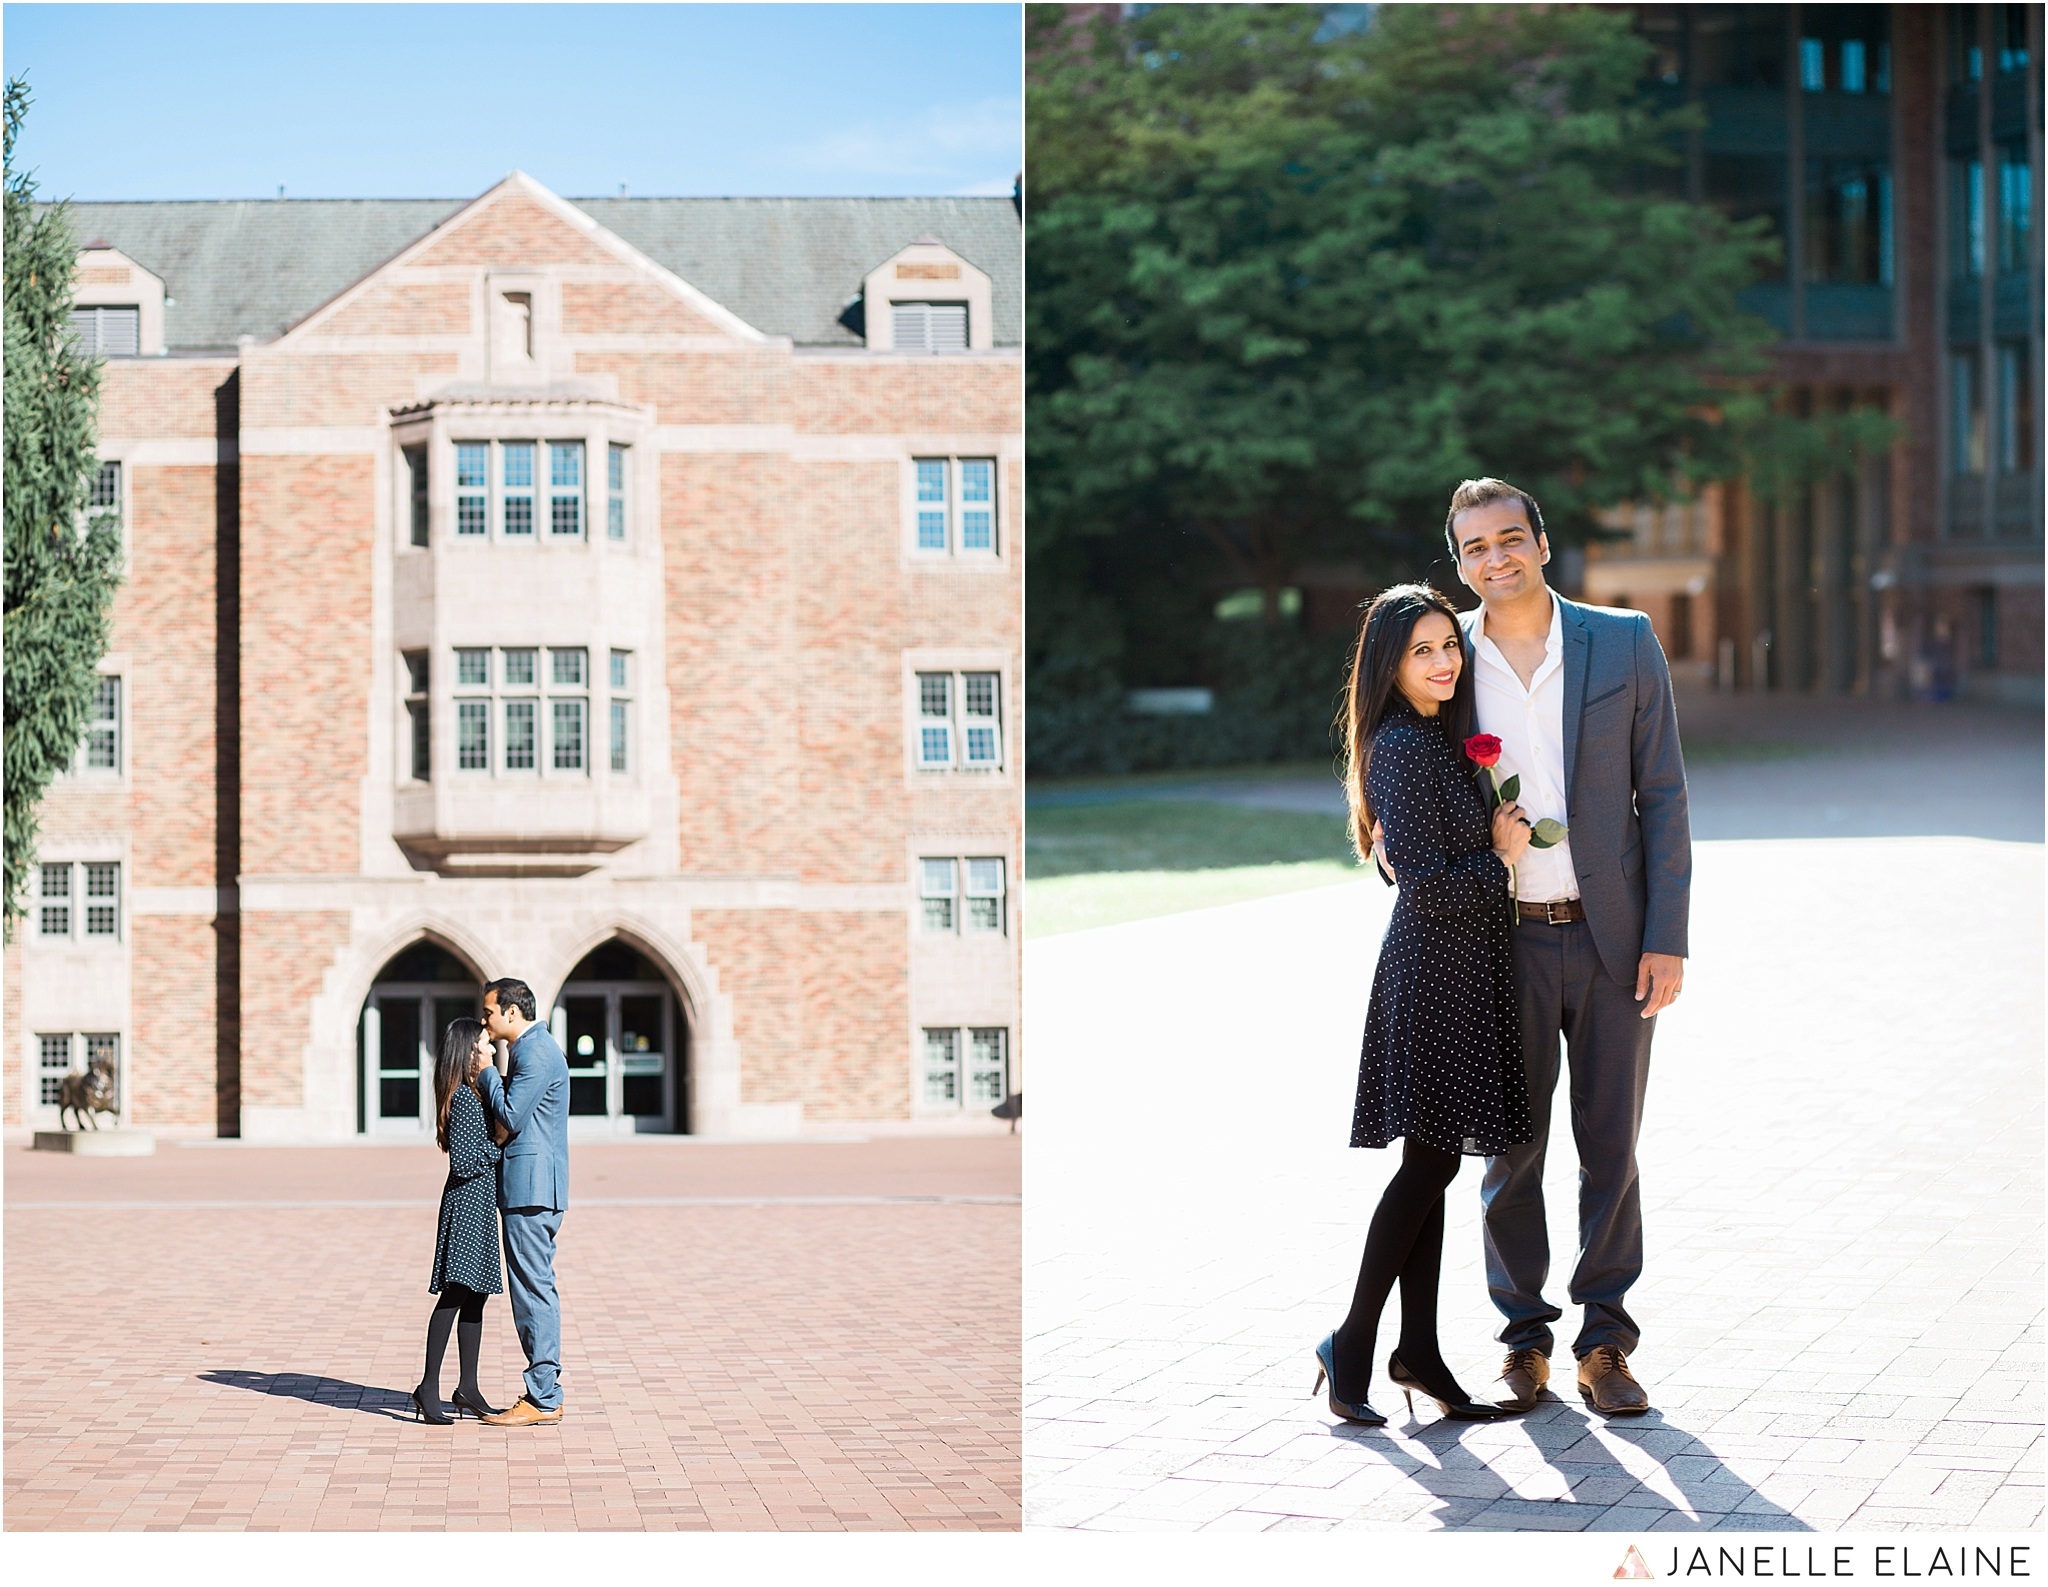 janelle elaine photography-zain and umema-seattle-uw-red square-engagement-photographer-88.jpg